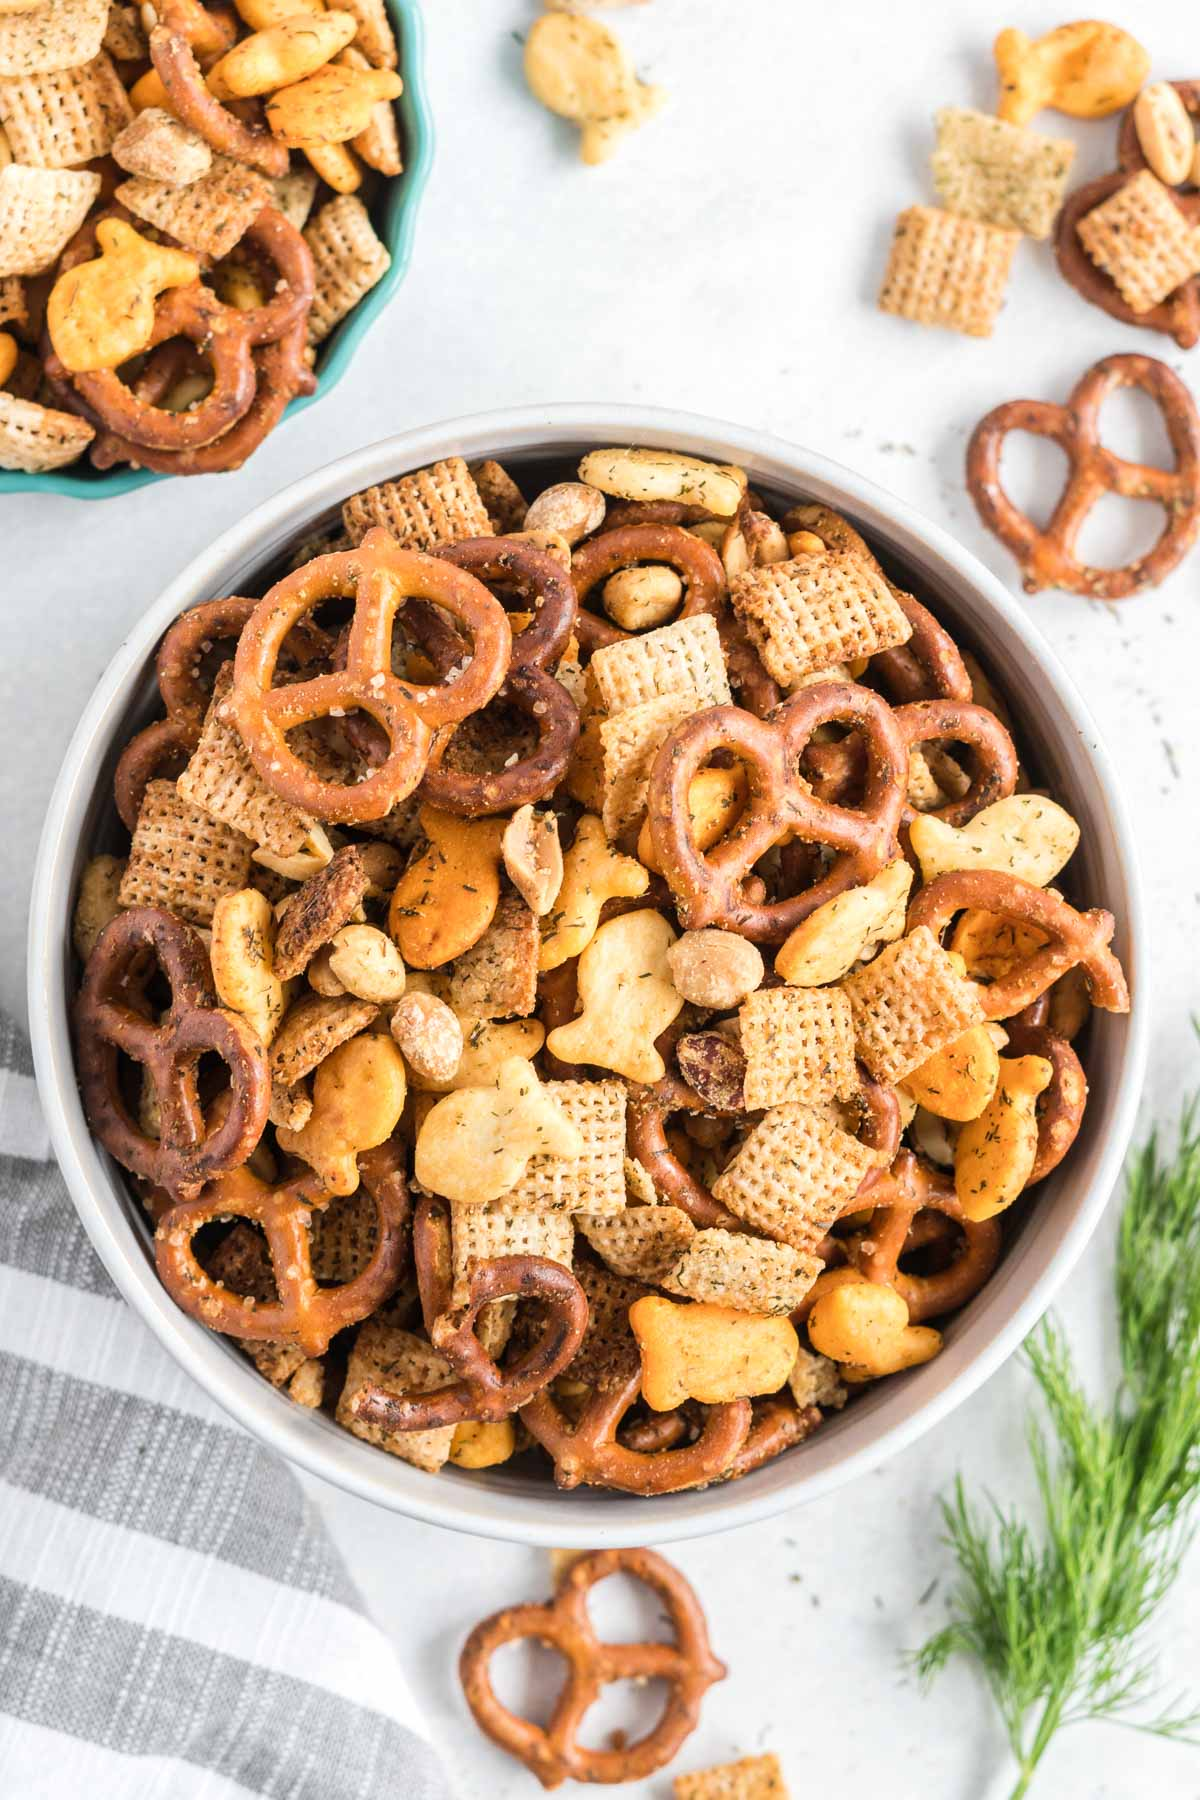 Chex mix in a small bowl with some scattered on the counter.